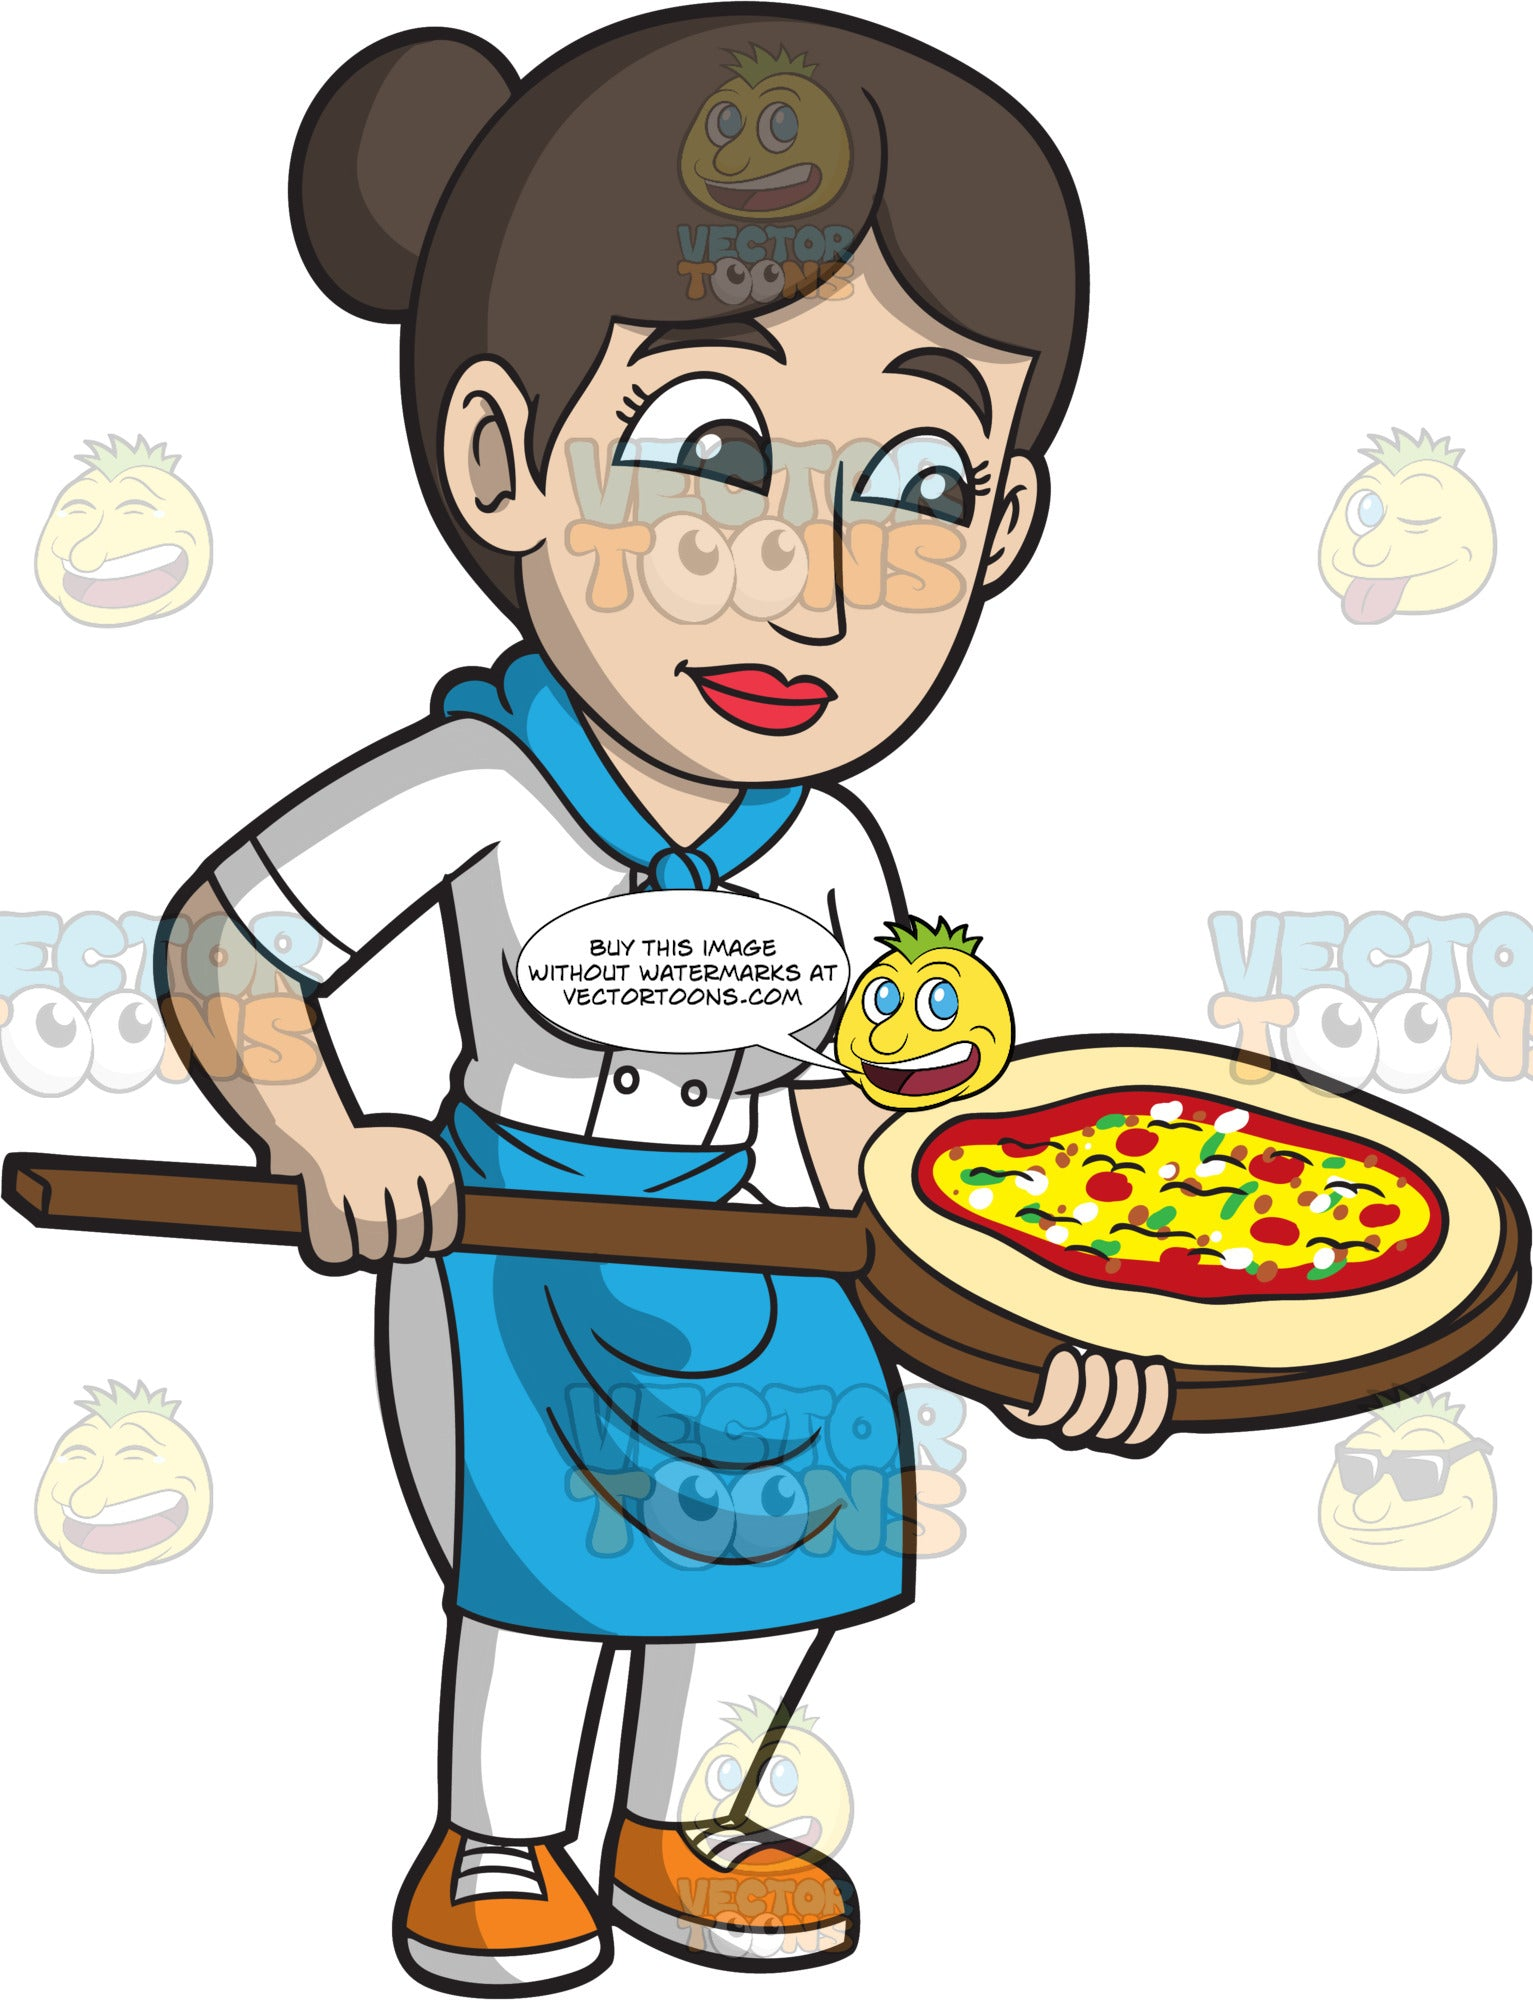 A Female Pizza Maker Baking A Delicious Pizza Pie